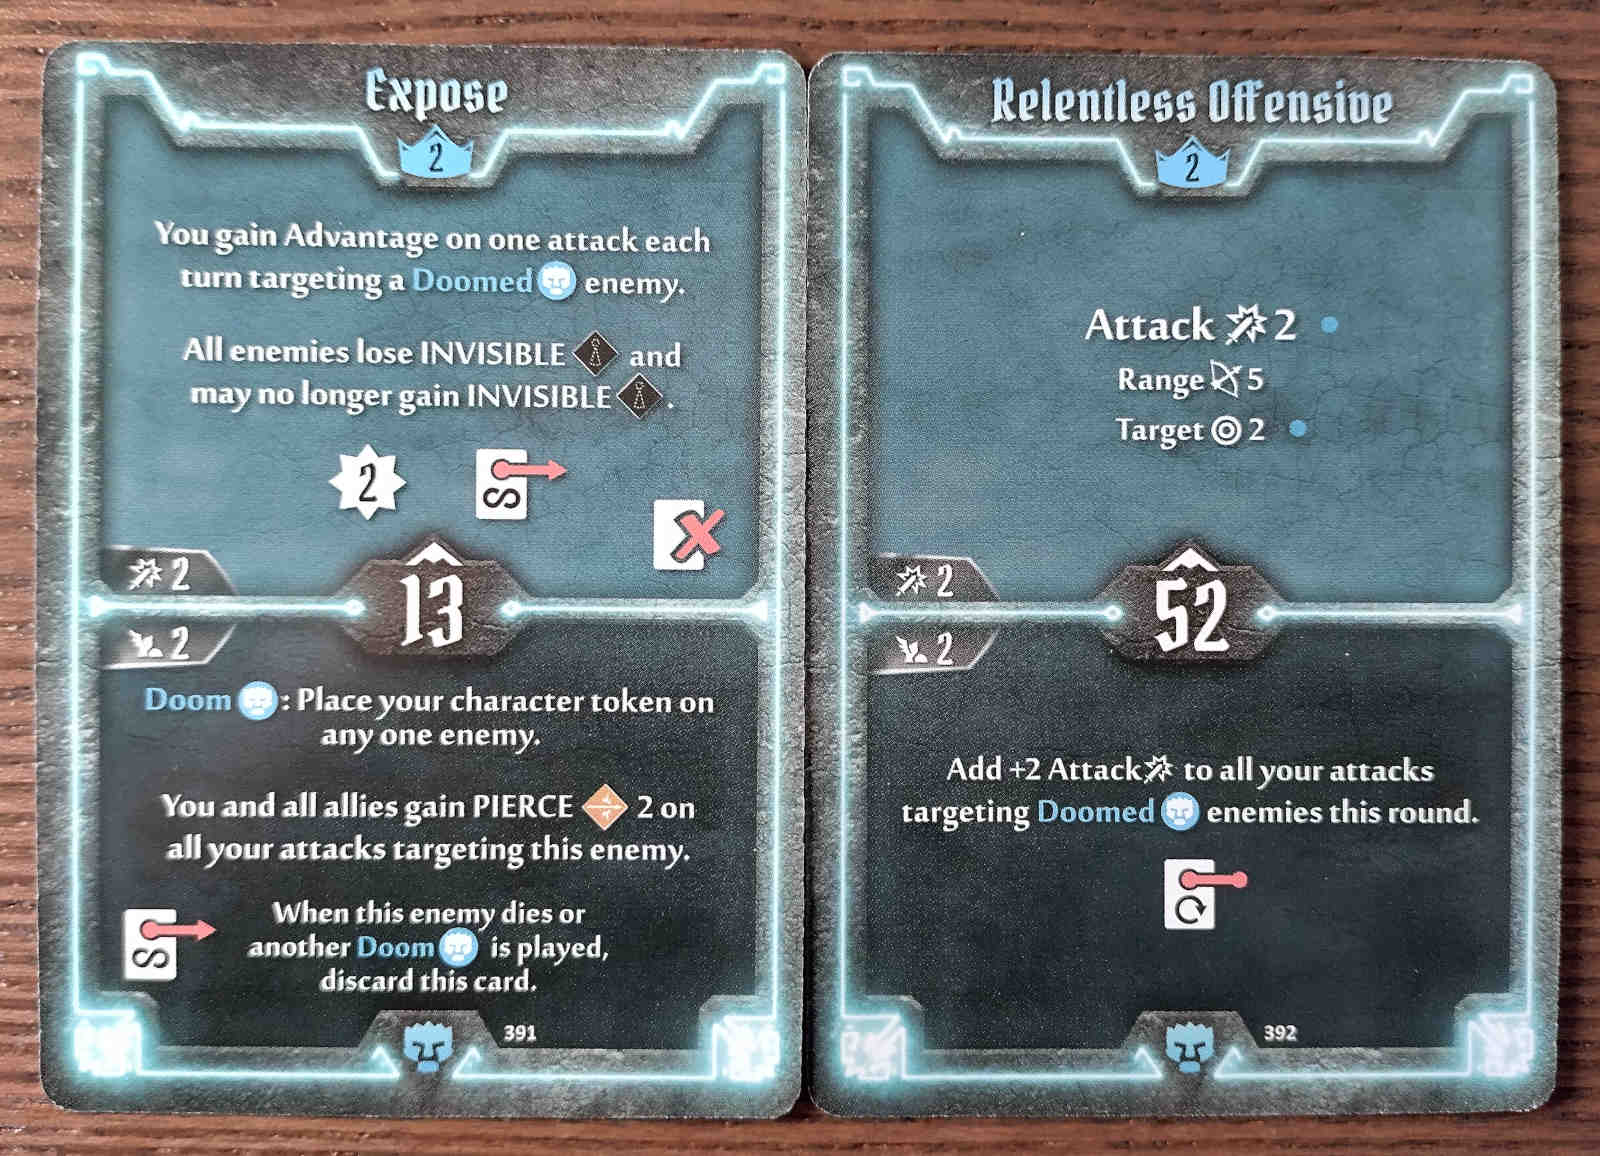 Level 2 Doomstalker cards - Expose and Relentless Offensive